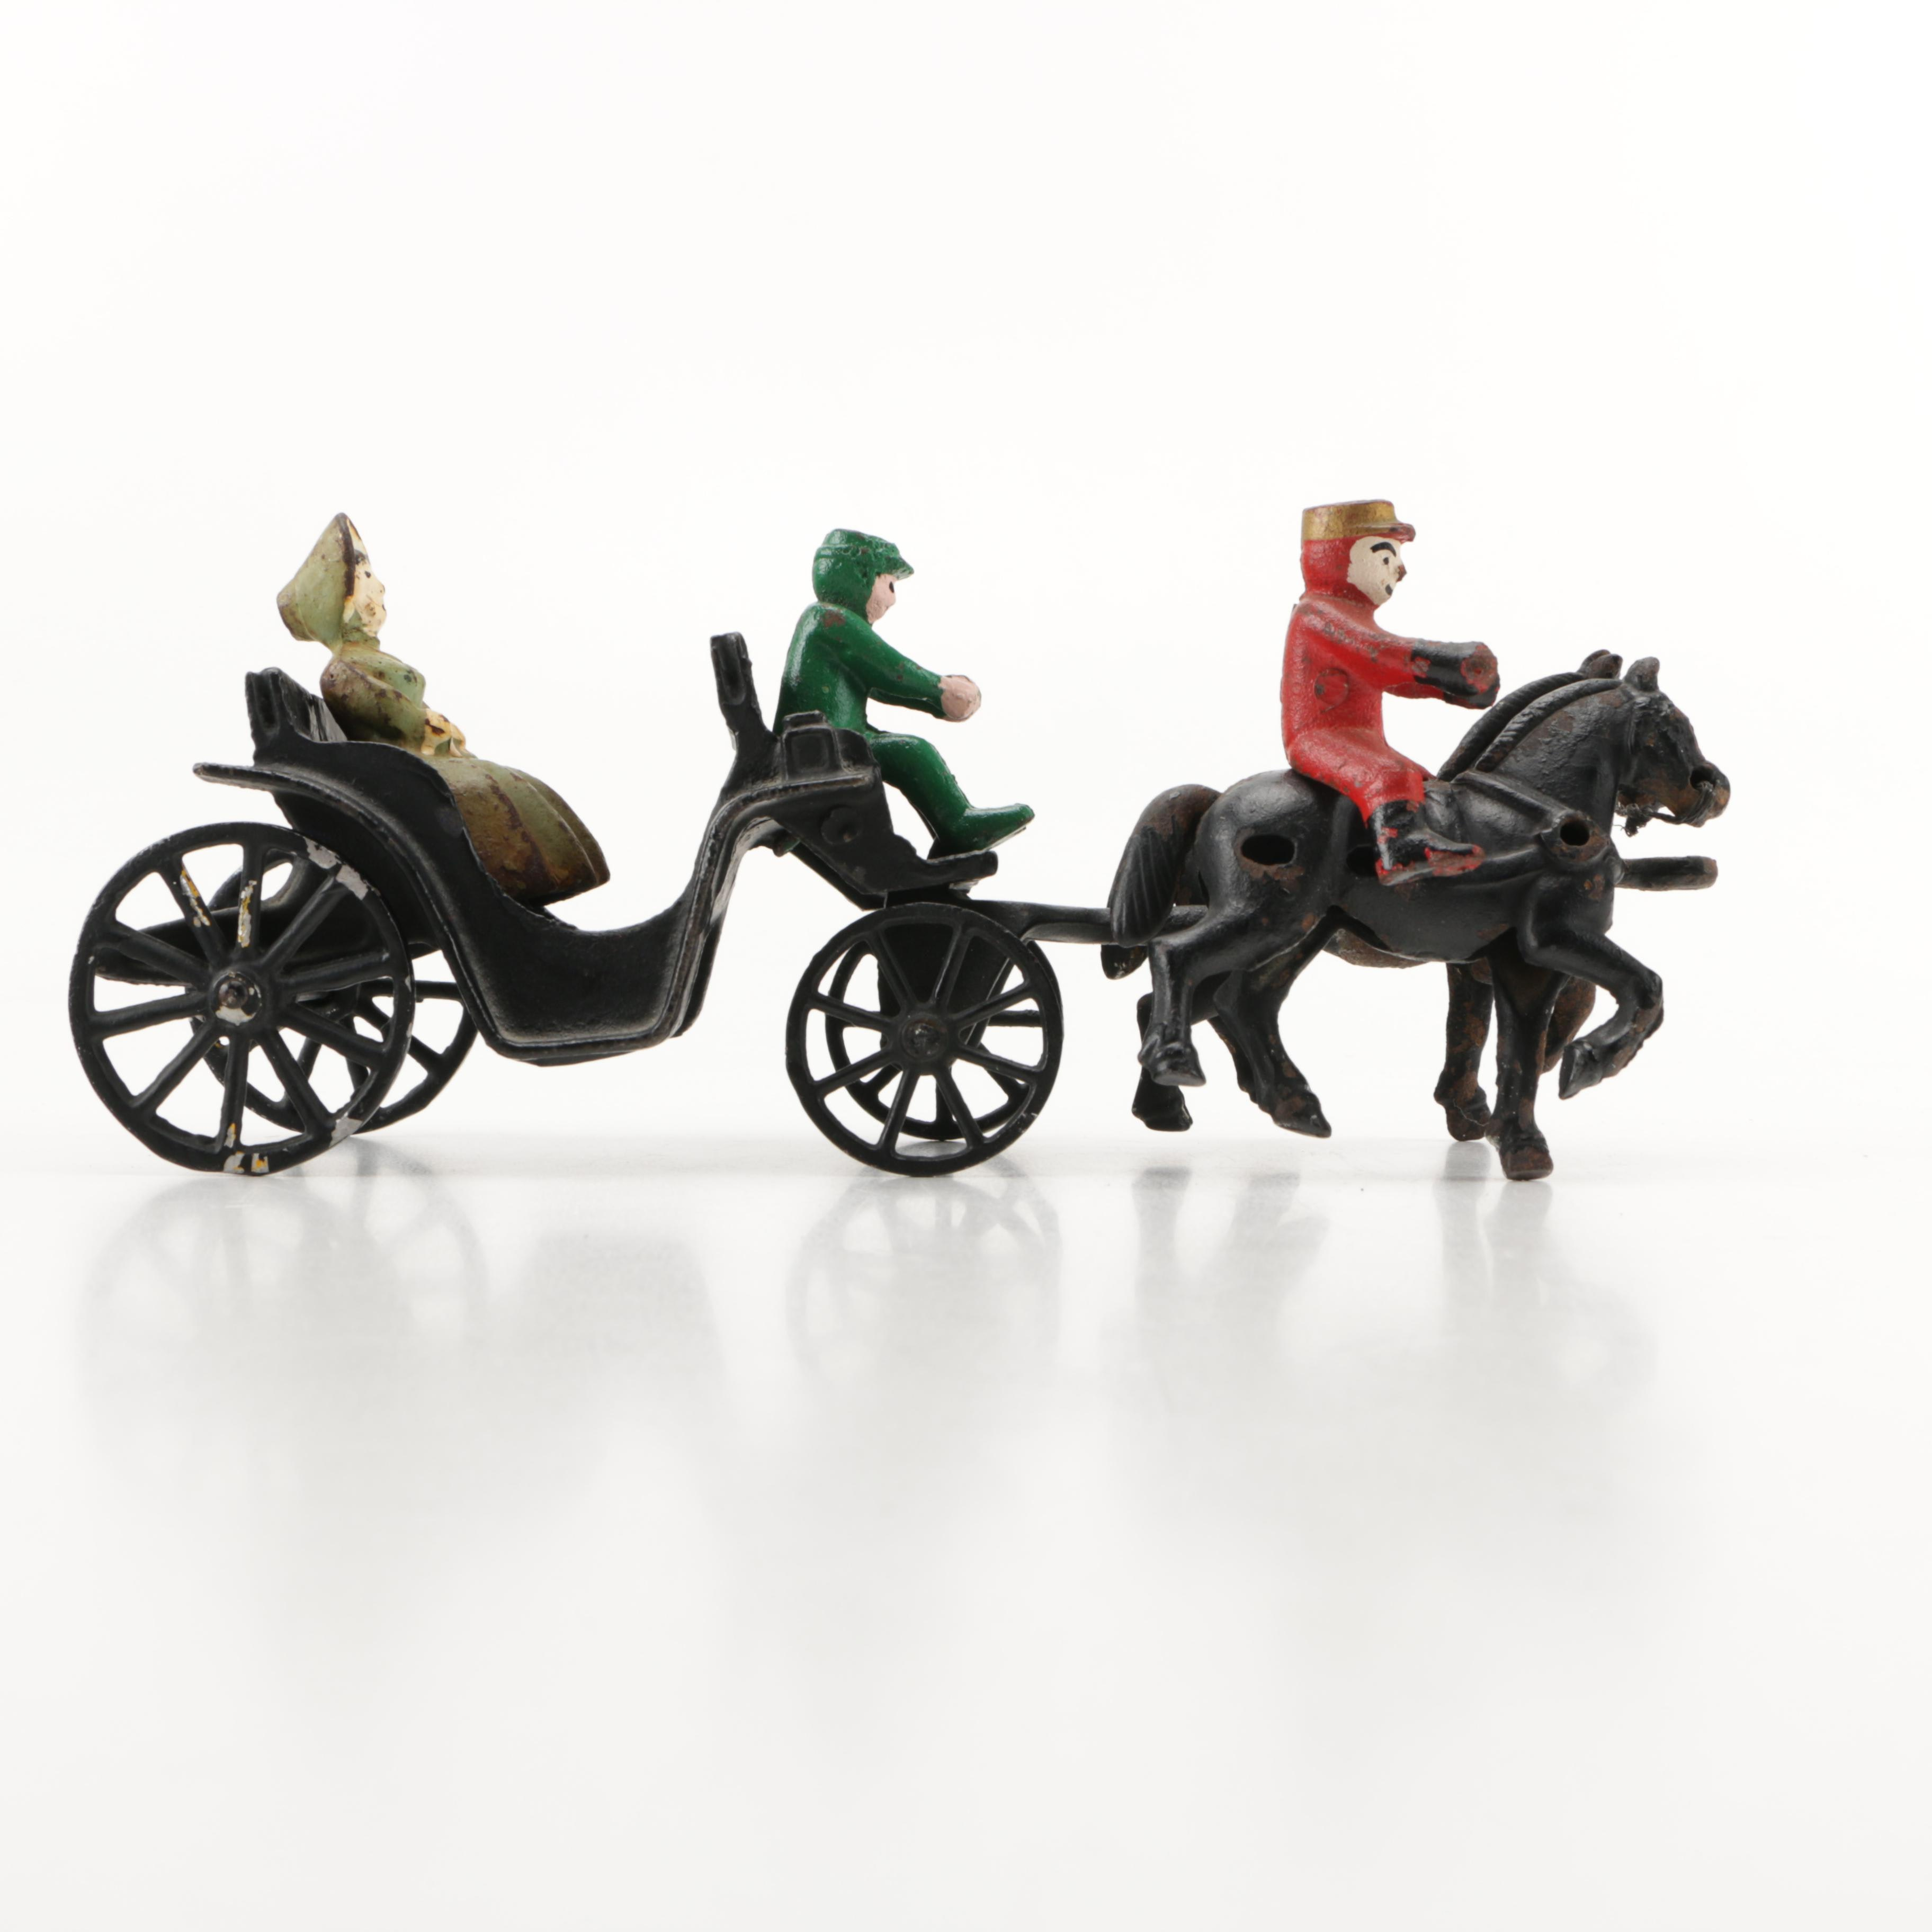 1930s Cast Iron Buggy Carriage and Figures